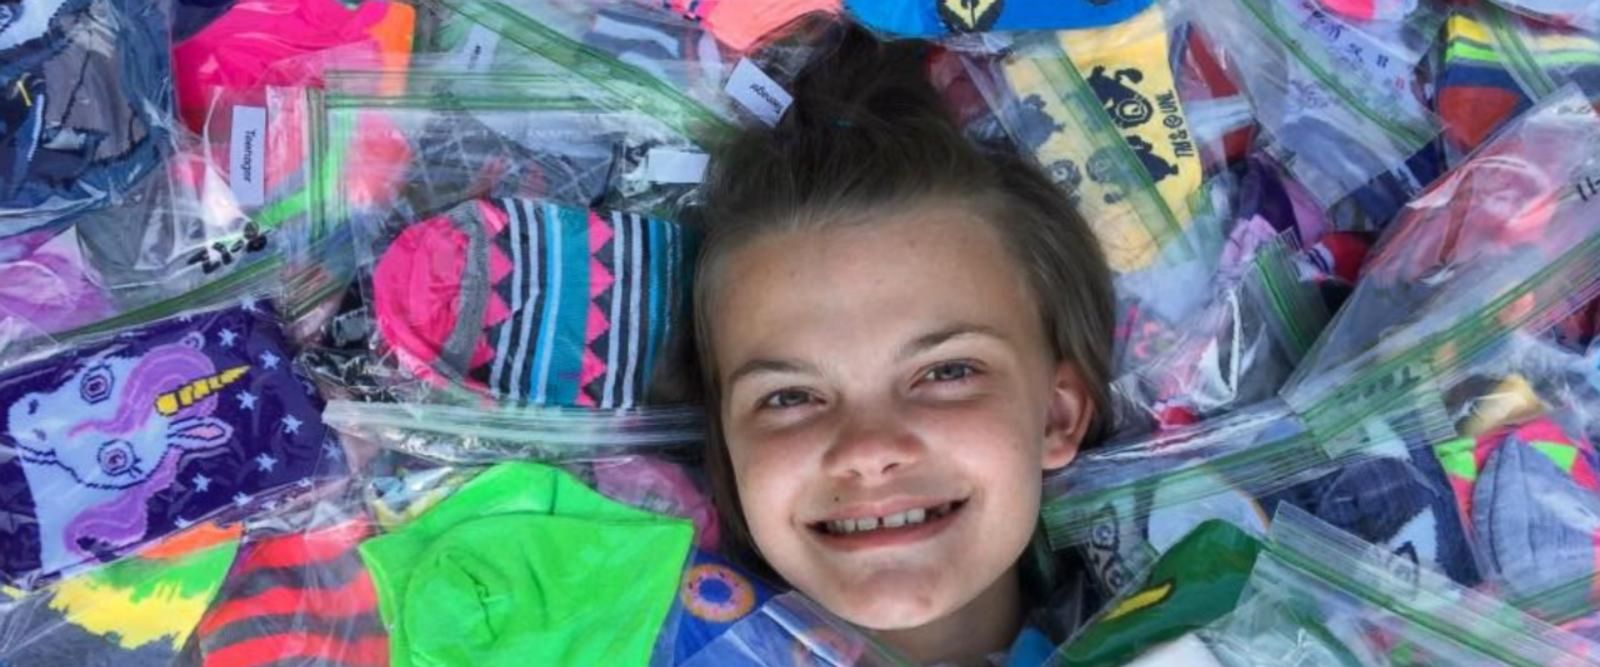 Emma Becker, 12, has collected thousands of pairs of socks for her friends at Connecticut Children's Medical Center.